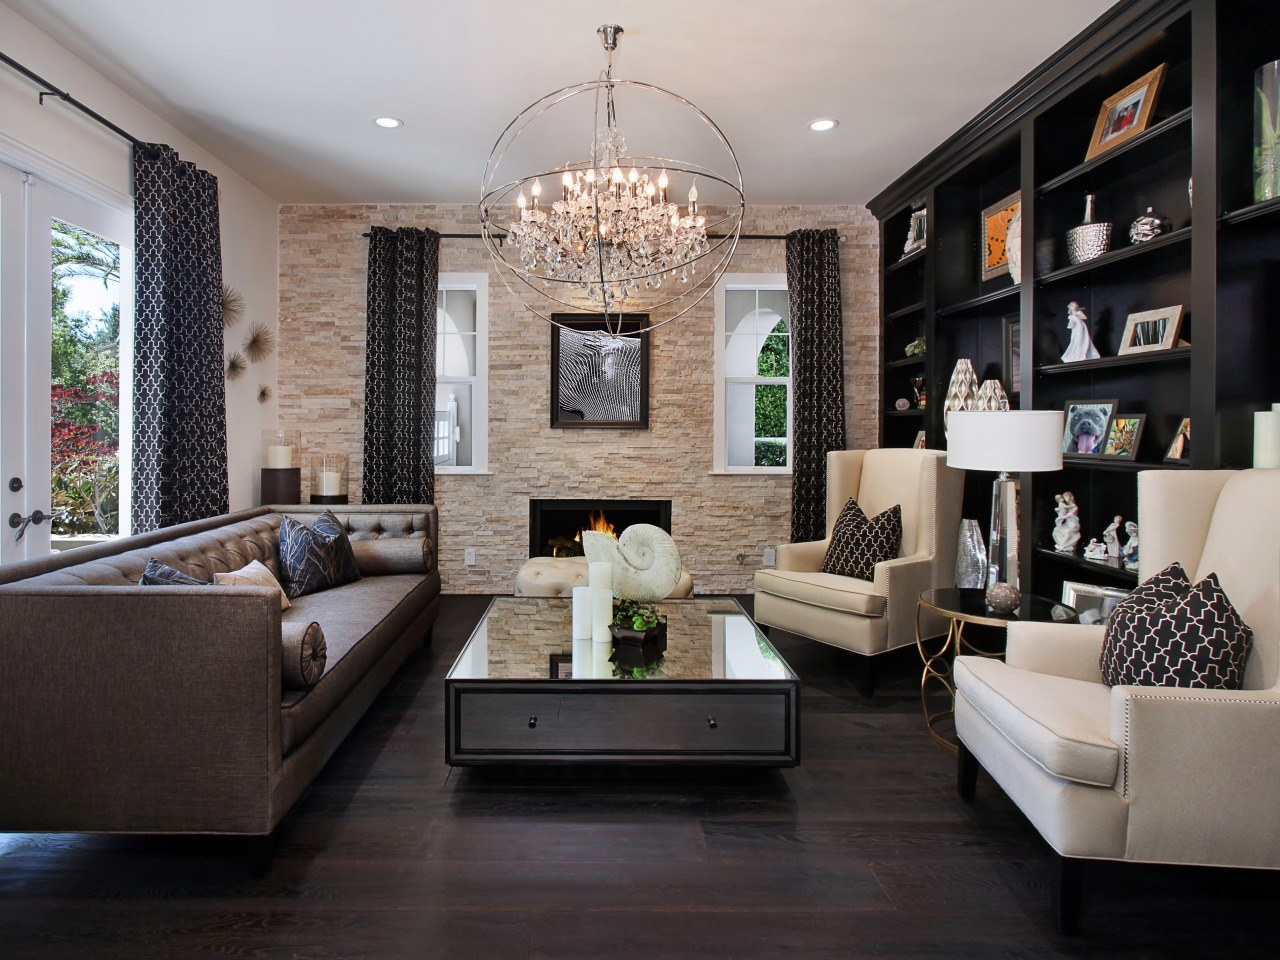 Exceptional Nobility and Elegance of Brown Living Room. Another black and white successful interior with noble dark floor